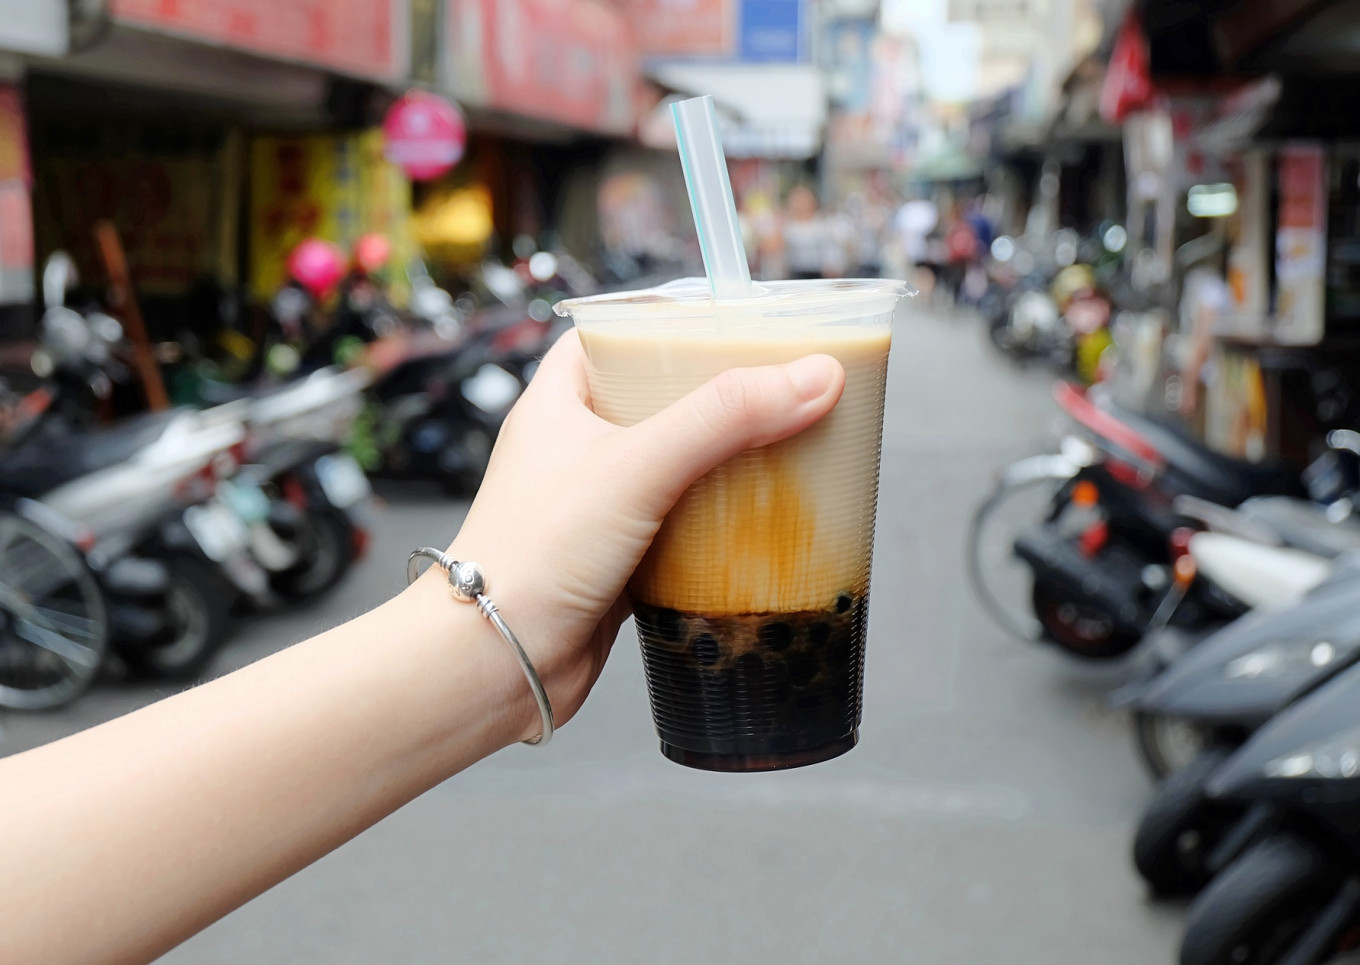 When in Taipei, quench your thirst with these bubble teas